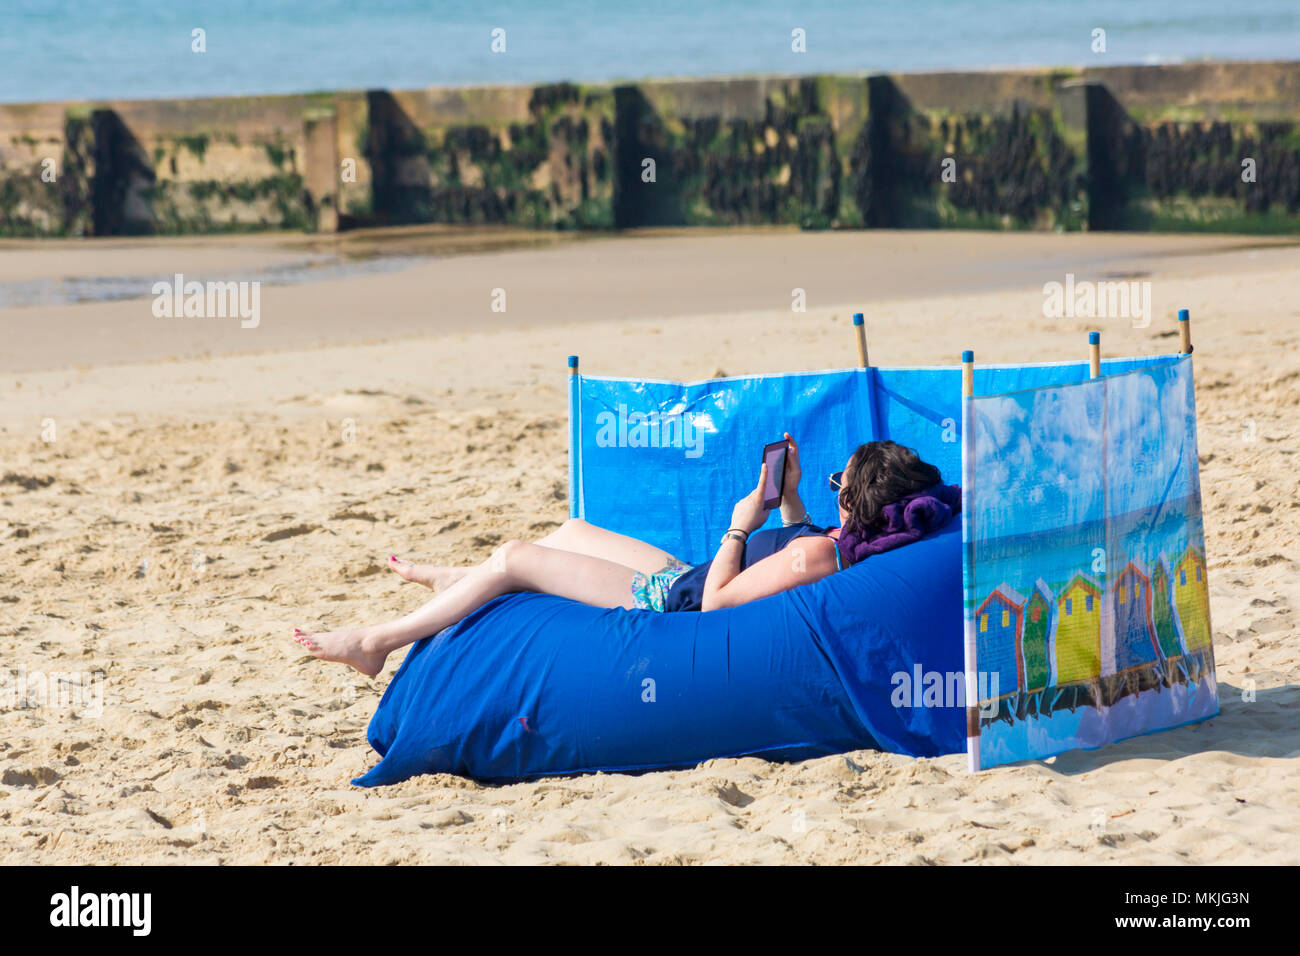 Bournemouth, Dorset, UK. 8th May 2018. UK weather: warm sunny start to the day, as a young woman relaxes on the beach at Alum Chine beach reading her kindle. Credit: Carolyn Jenkins/Alamy Live News Stock Photo